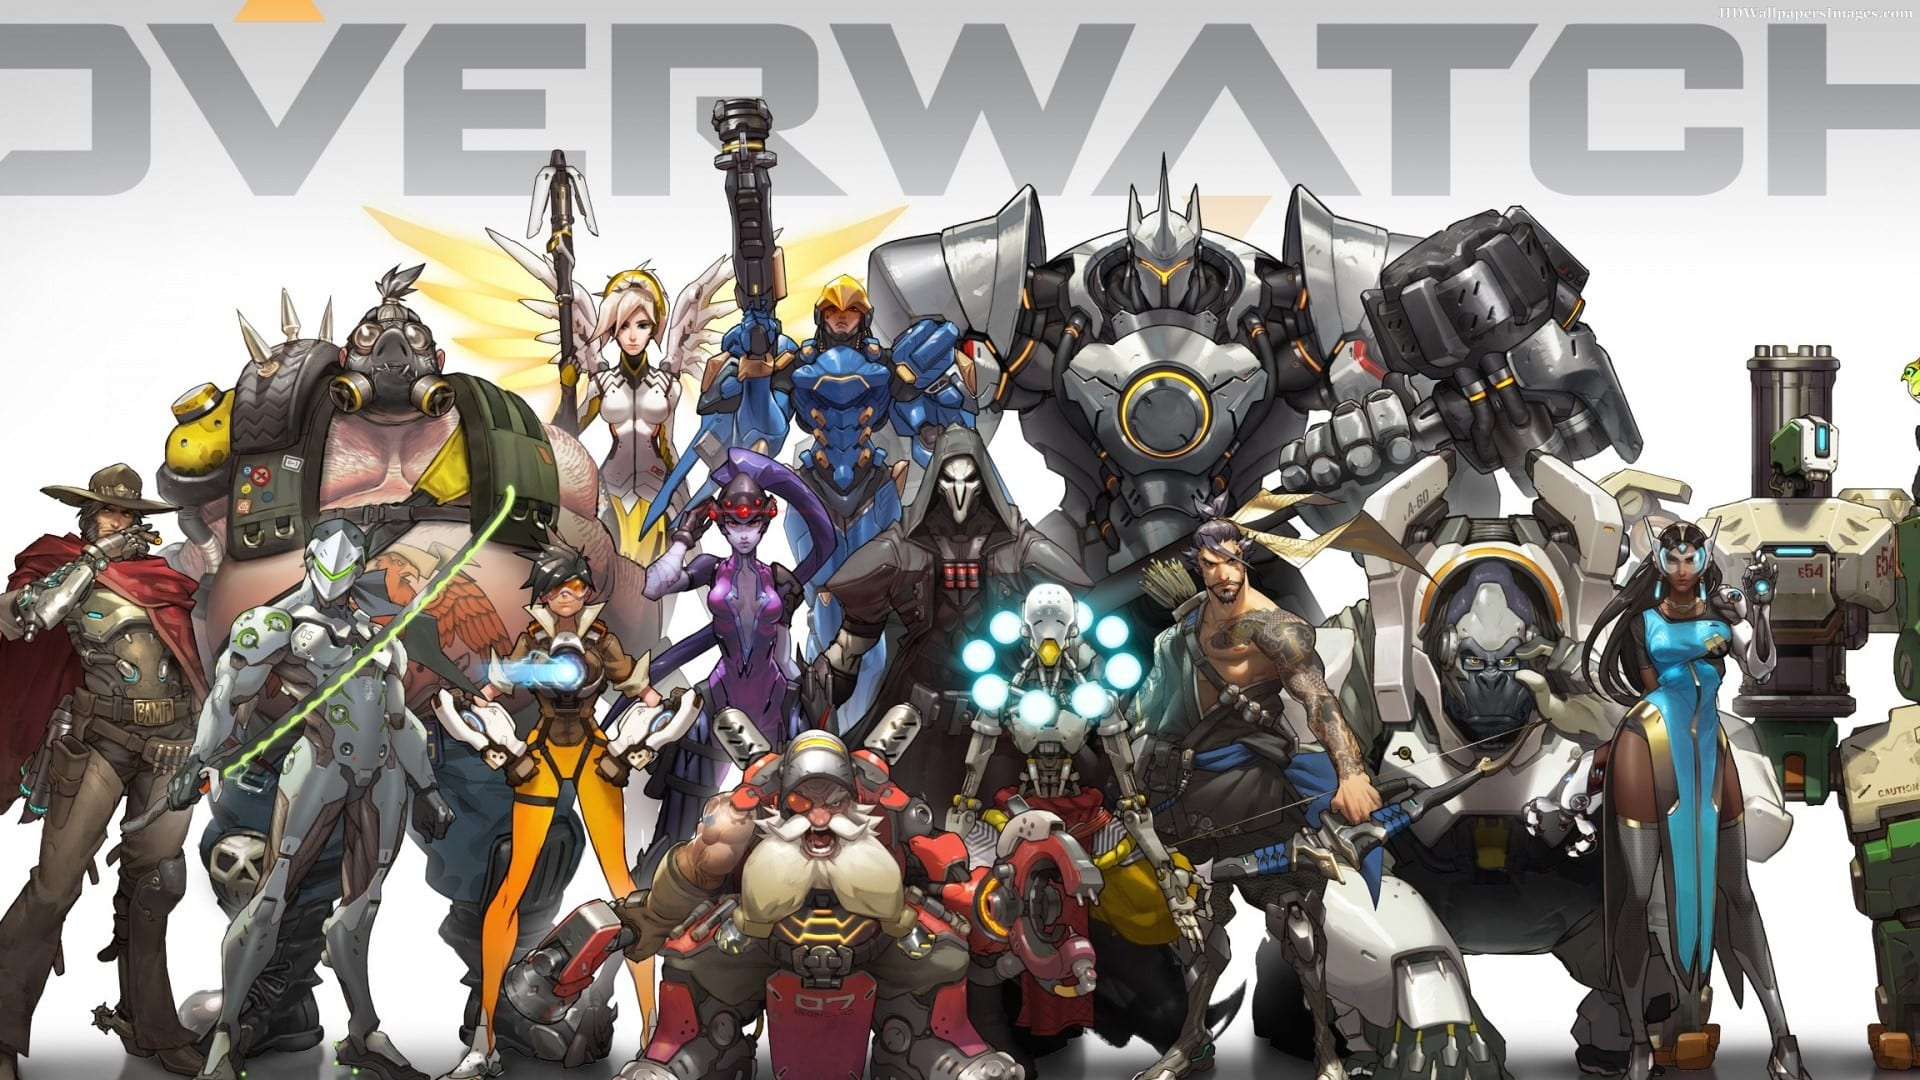 pc gaming.it tf gallery slide src - Un nuovo Free Weekend per Overwatch dal 16 febbraio